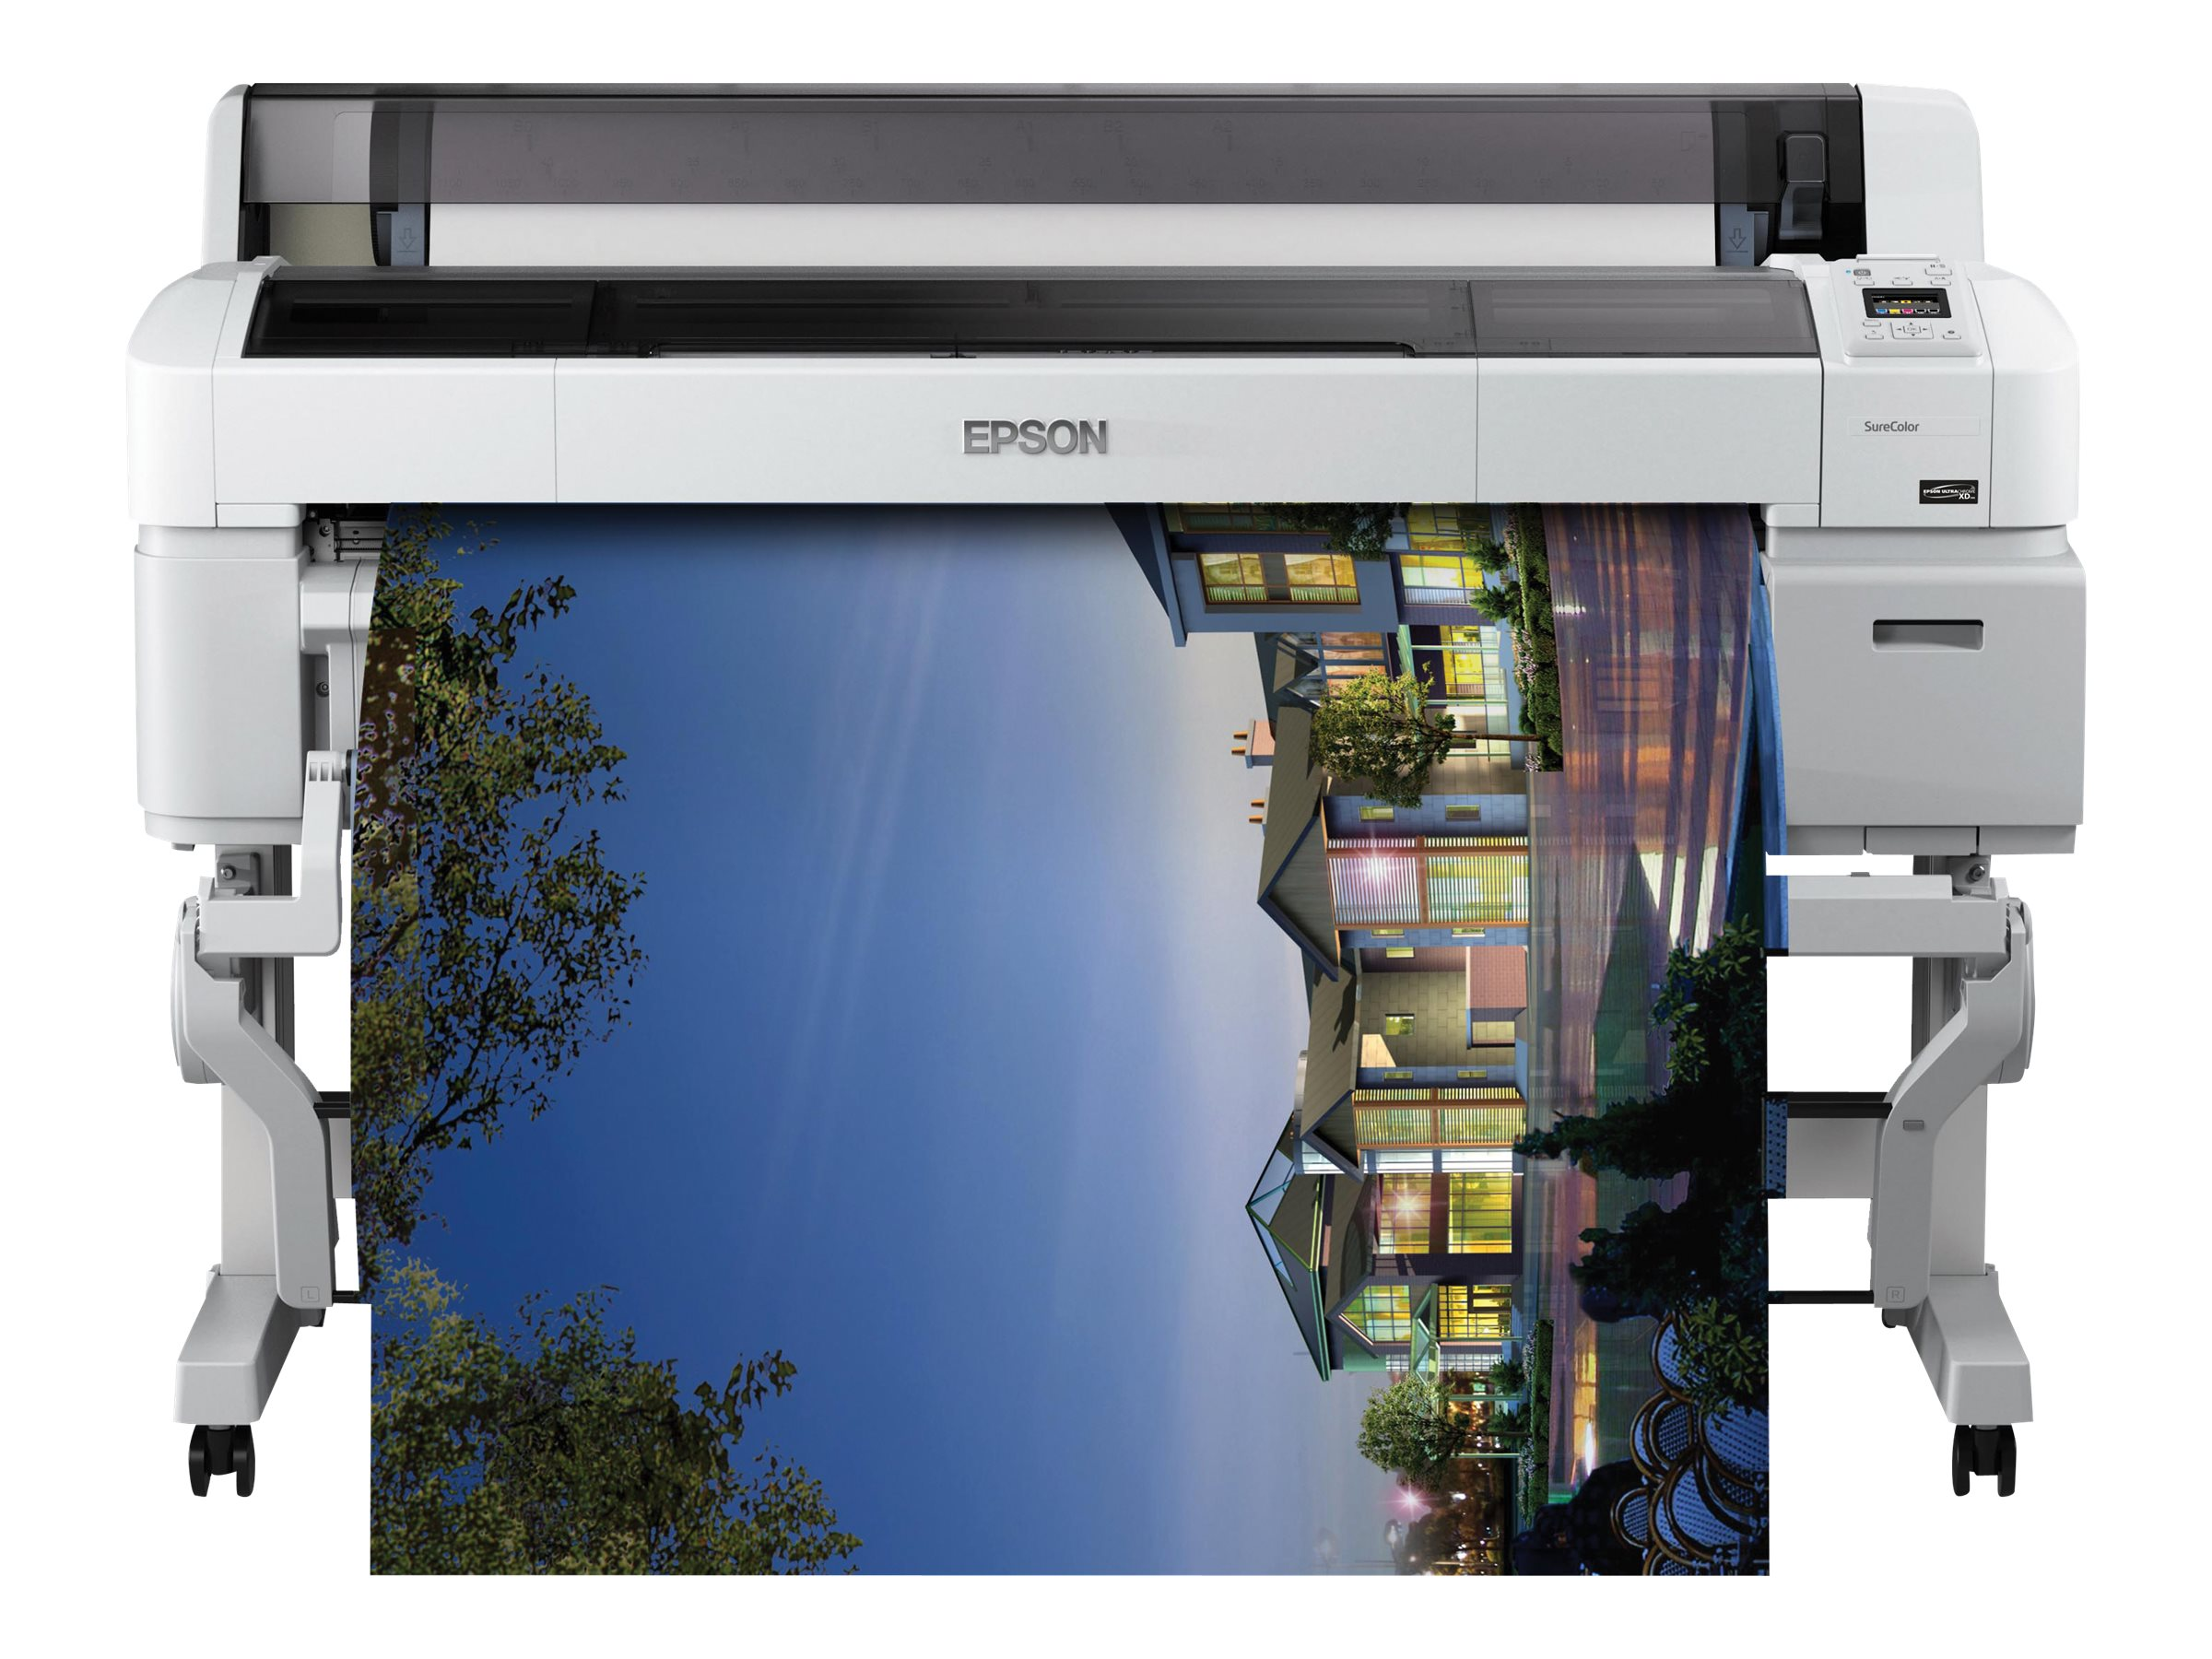 Epson SureColor T7270 Printer - $4995 less instant rebate of $1000.00